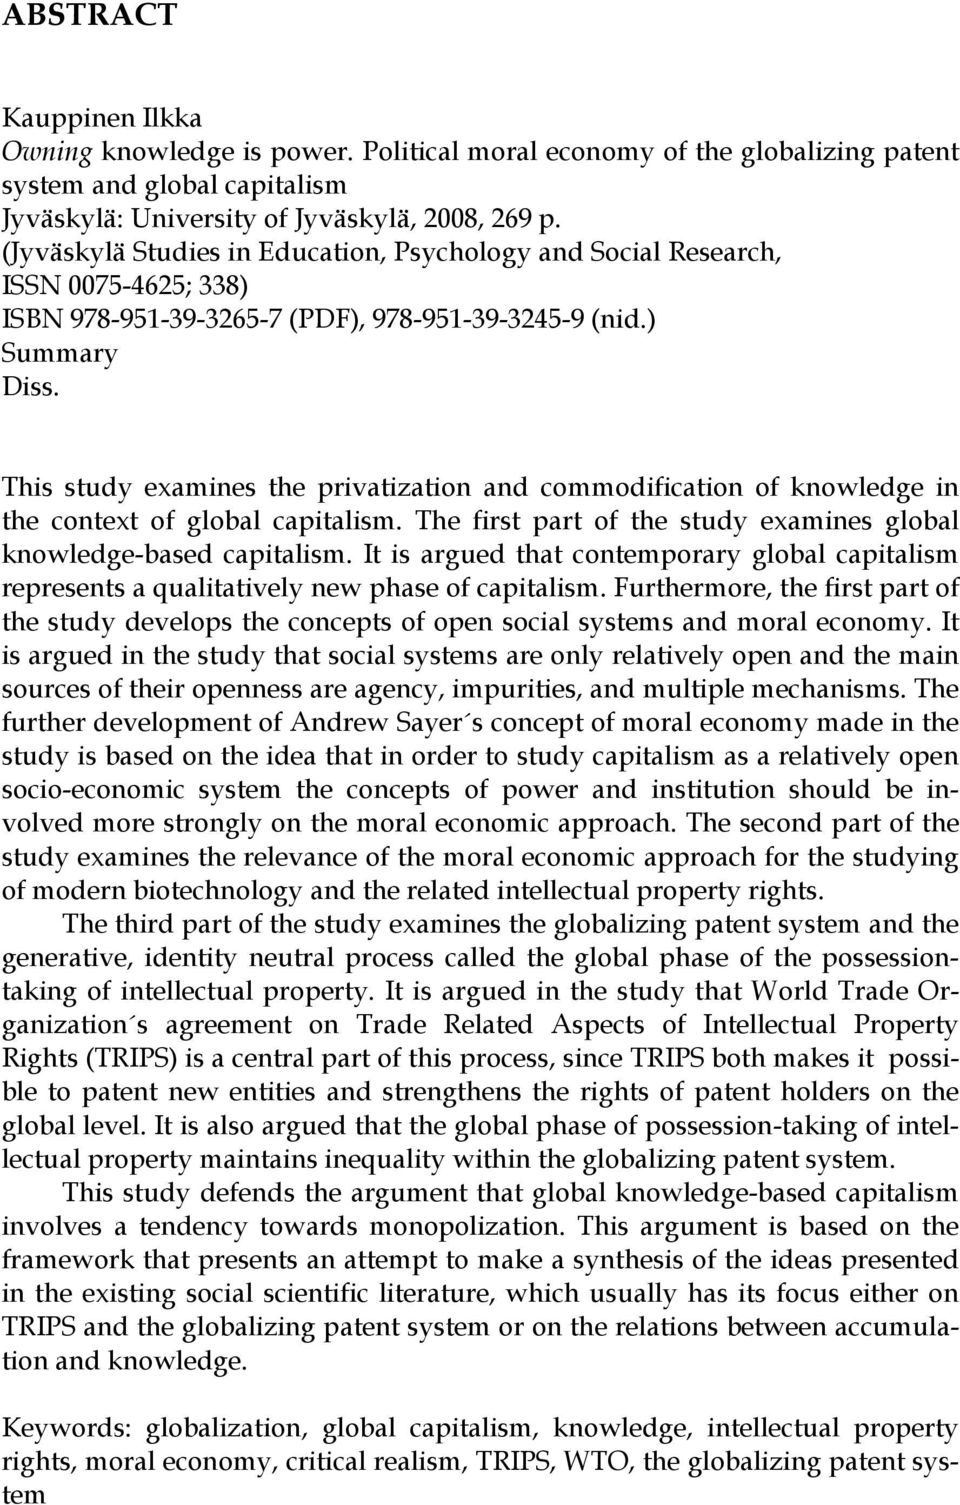 This study examines the privatization and commodification of knowledge in the context of global capitalism. The first part of the study examines global knowledge-based capitalism.